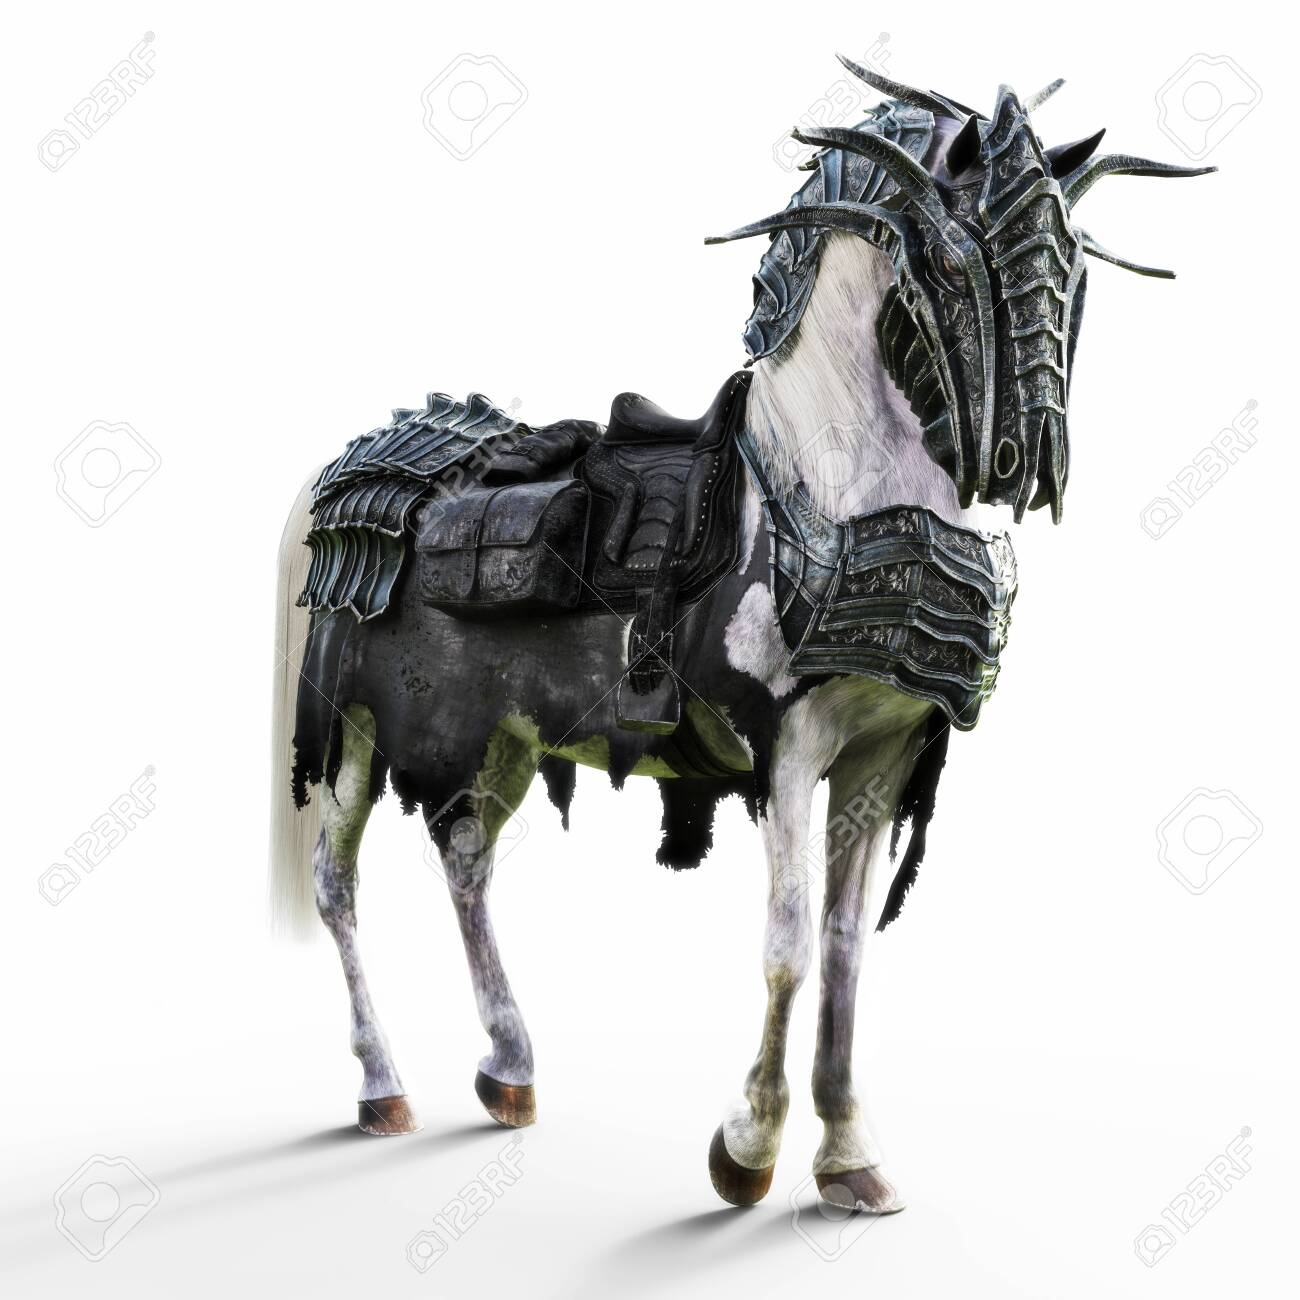 Angled View Of A Posing Armored White War Horse On A Isolated Stock Photo Picture And Royalty Free Image Image 130318818